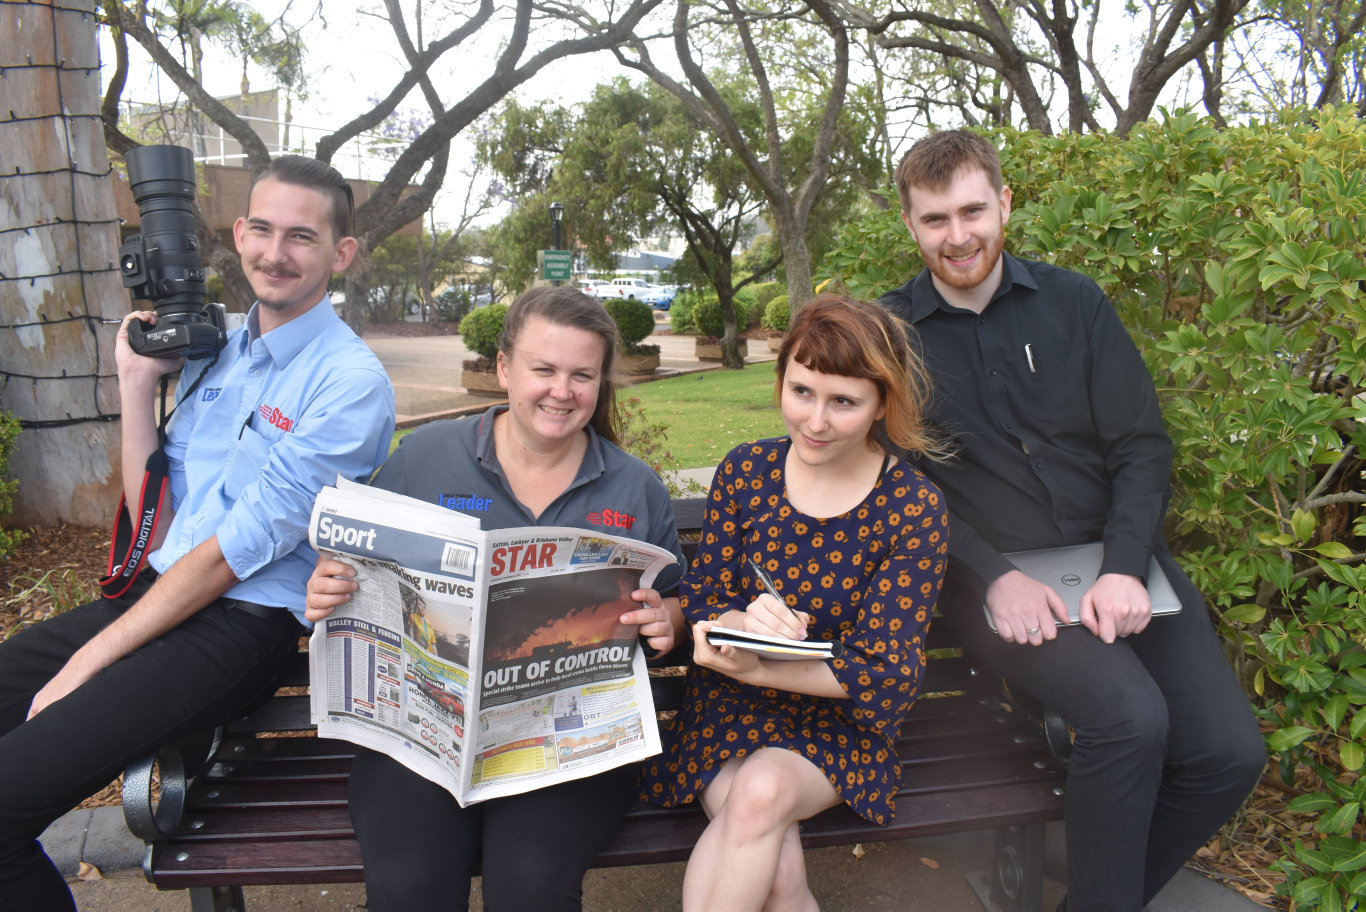 Gatton Star editorial team, Dominic Elsome, editor Ali Kuchel, Ebony Graveur and Nathan Greaves.